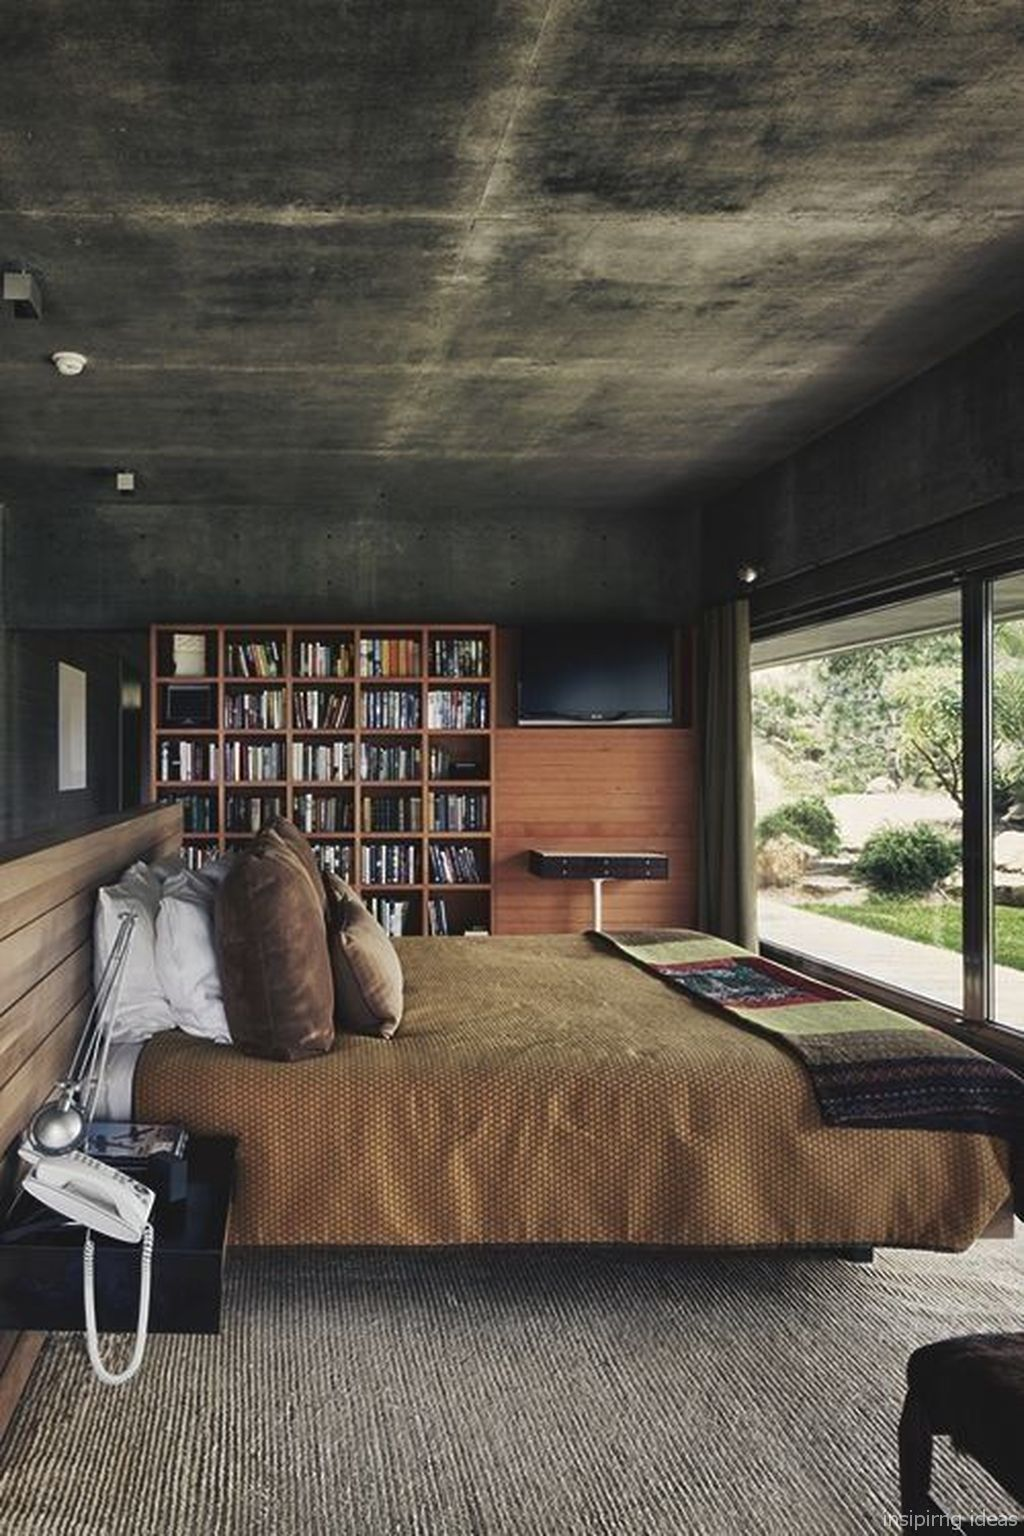 Best 55 Simple Bedroom Design Ideas For Small Space Home 400 x 300